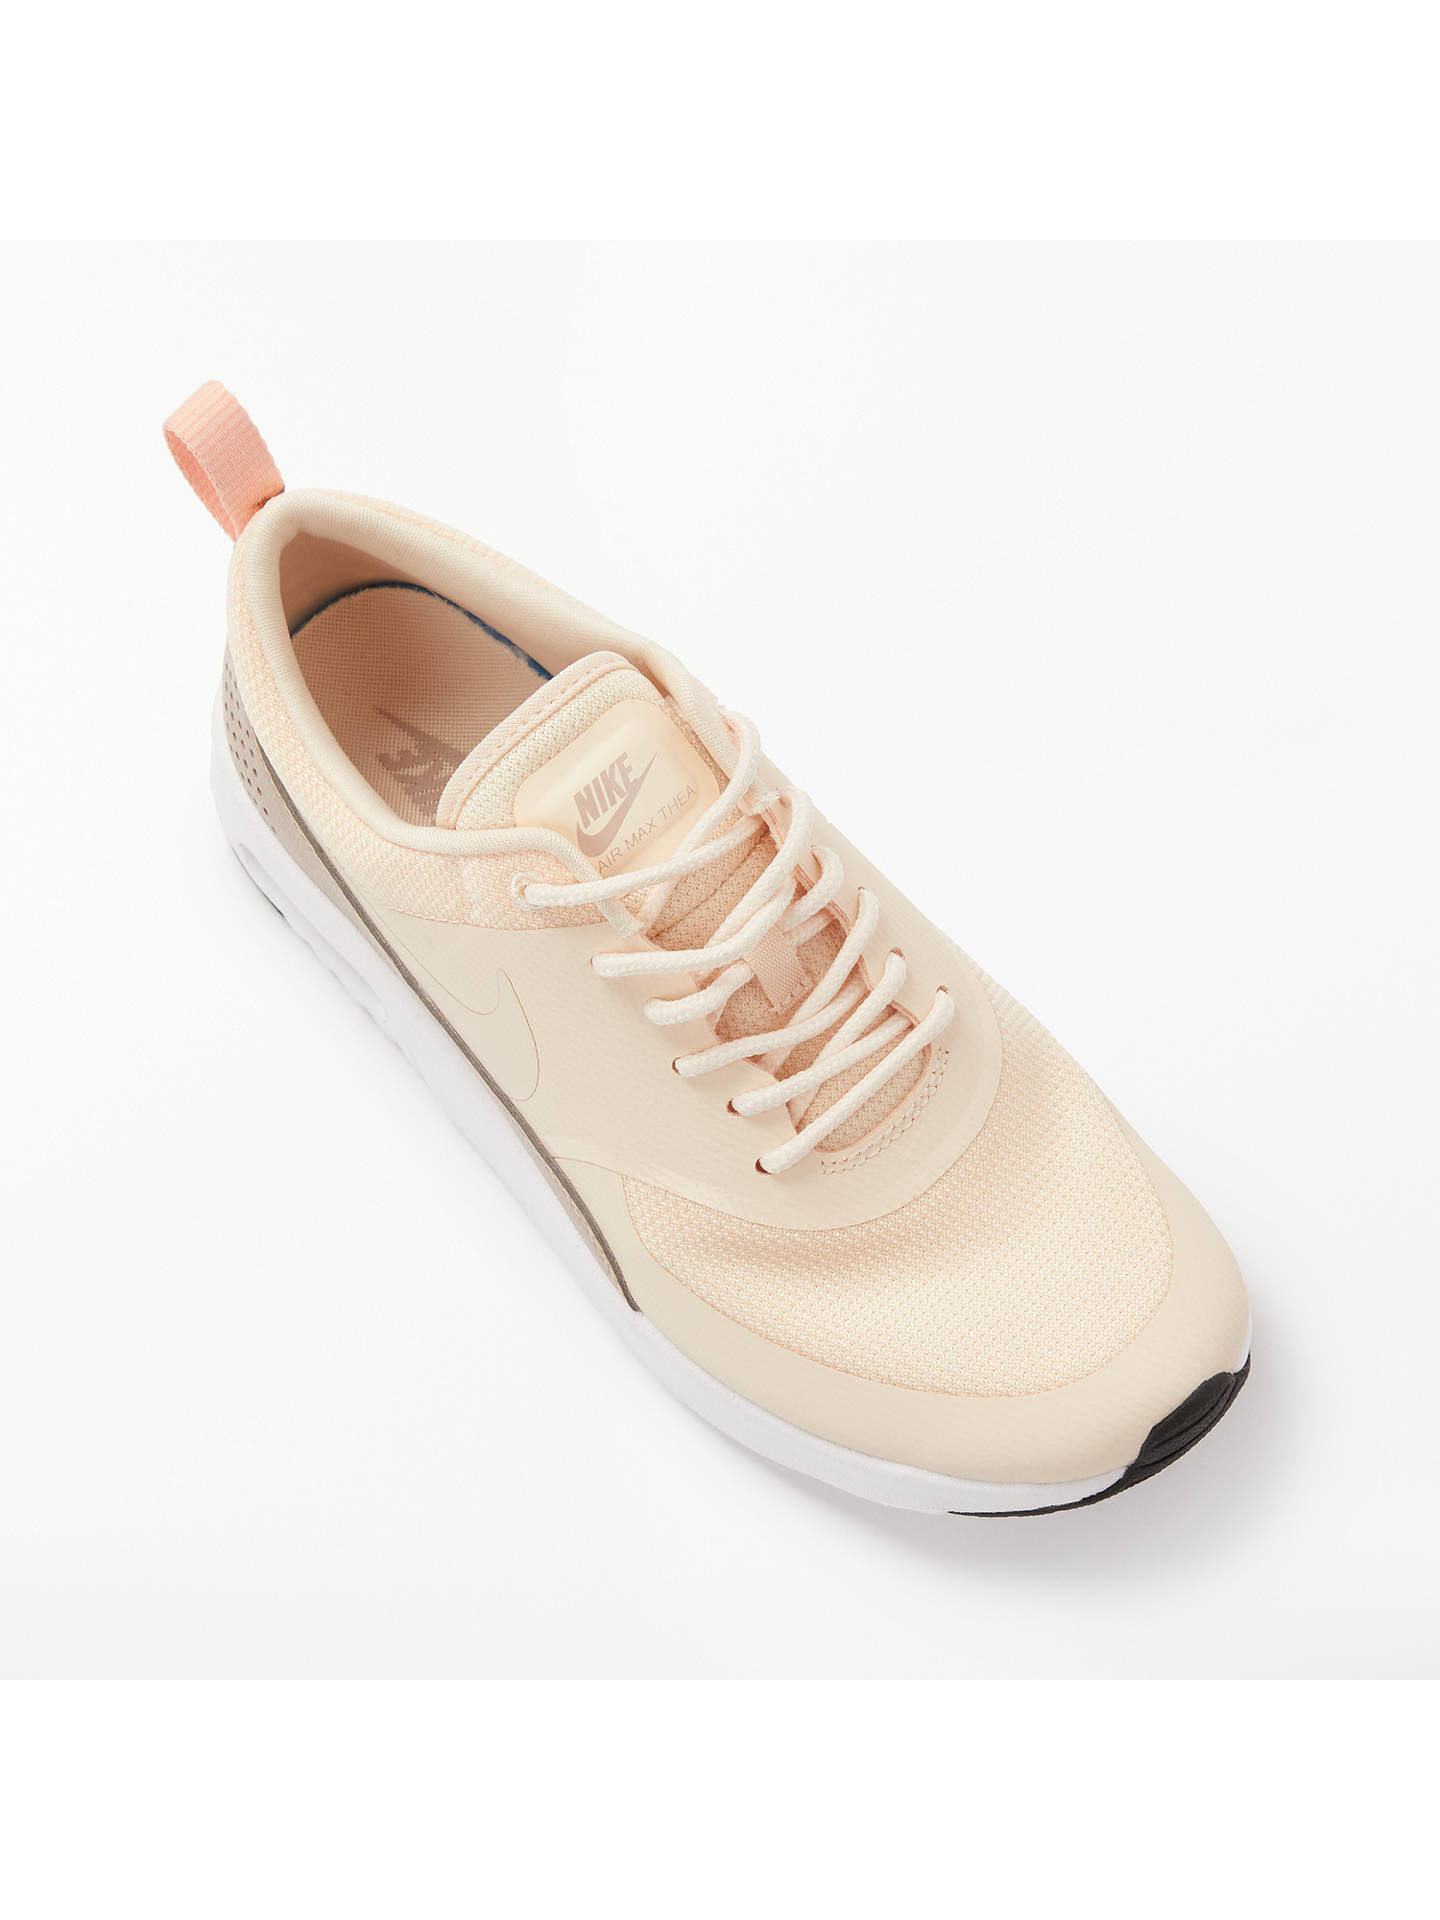 Nike Air Max Thea Women's Trainers, Guava Ice at John Lewis